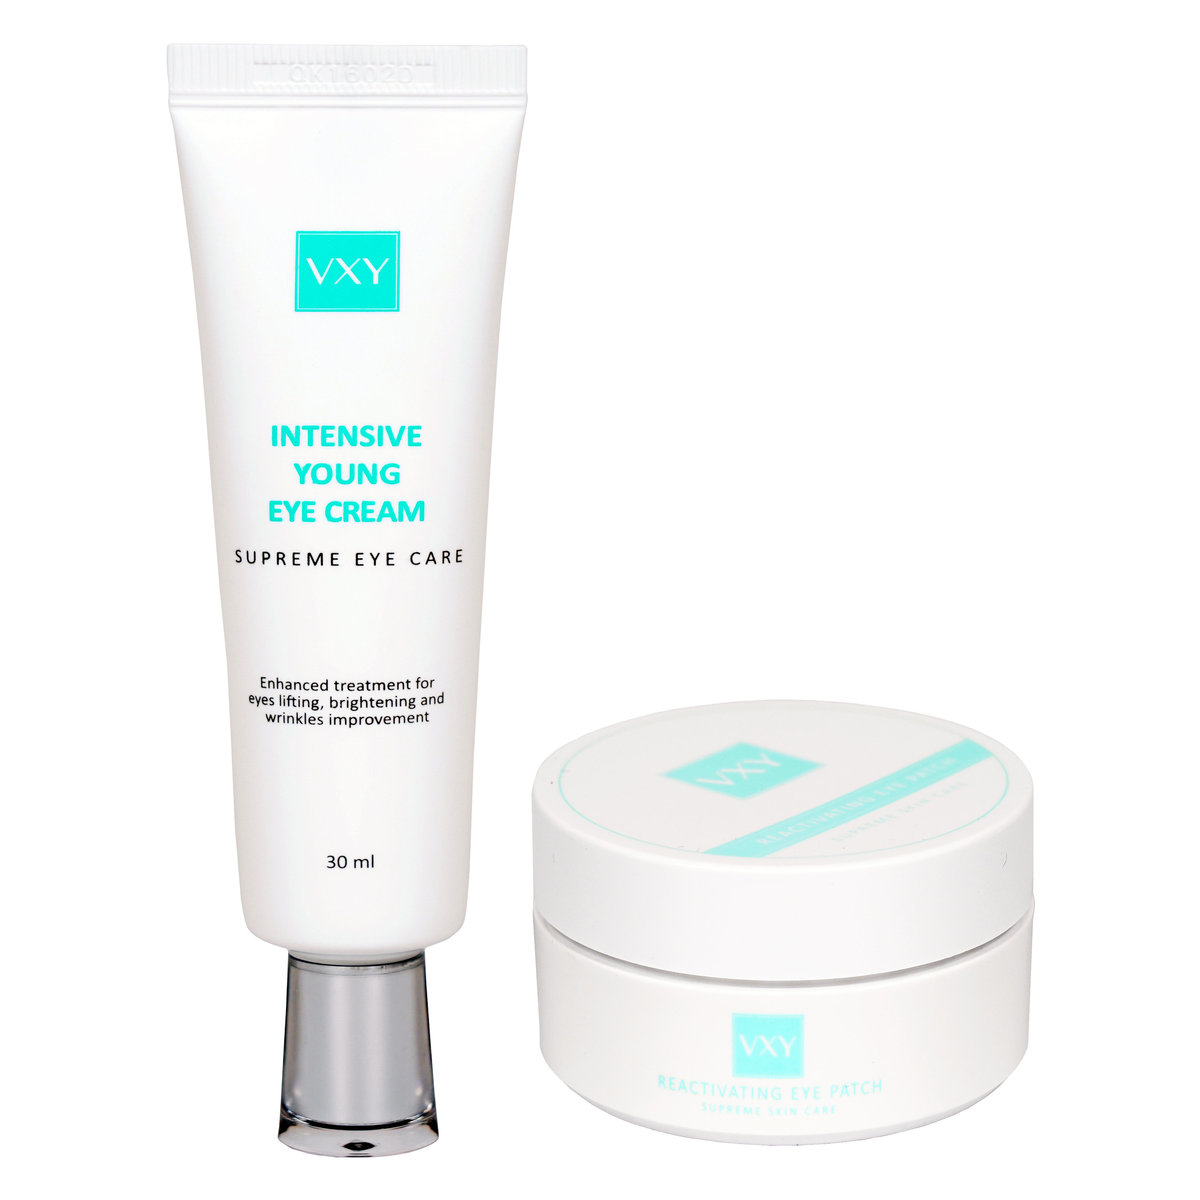 Eye Care Set (Intensive Eye Cream+Reactivating Eye Patch)